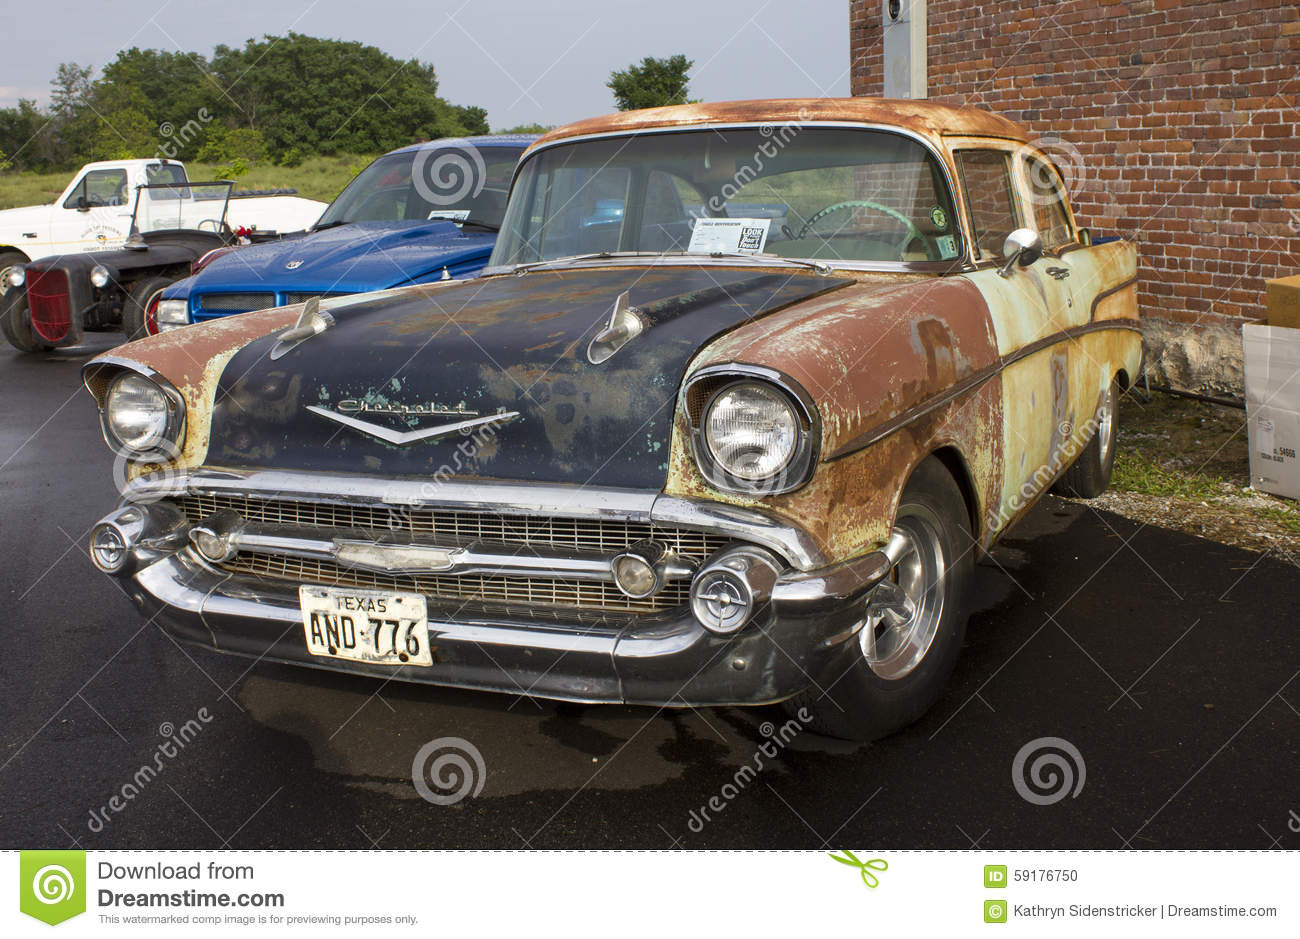 Chevy Two Door Sedan Chevrolet Post Original Paint Patina Large Front Bumper Chrome Grille Parked Local Cruise Night